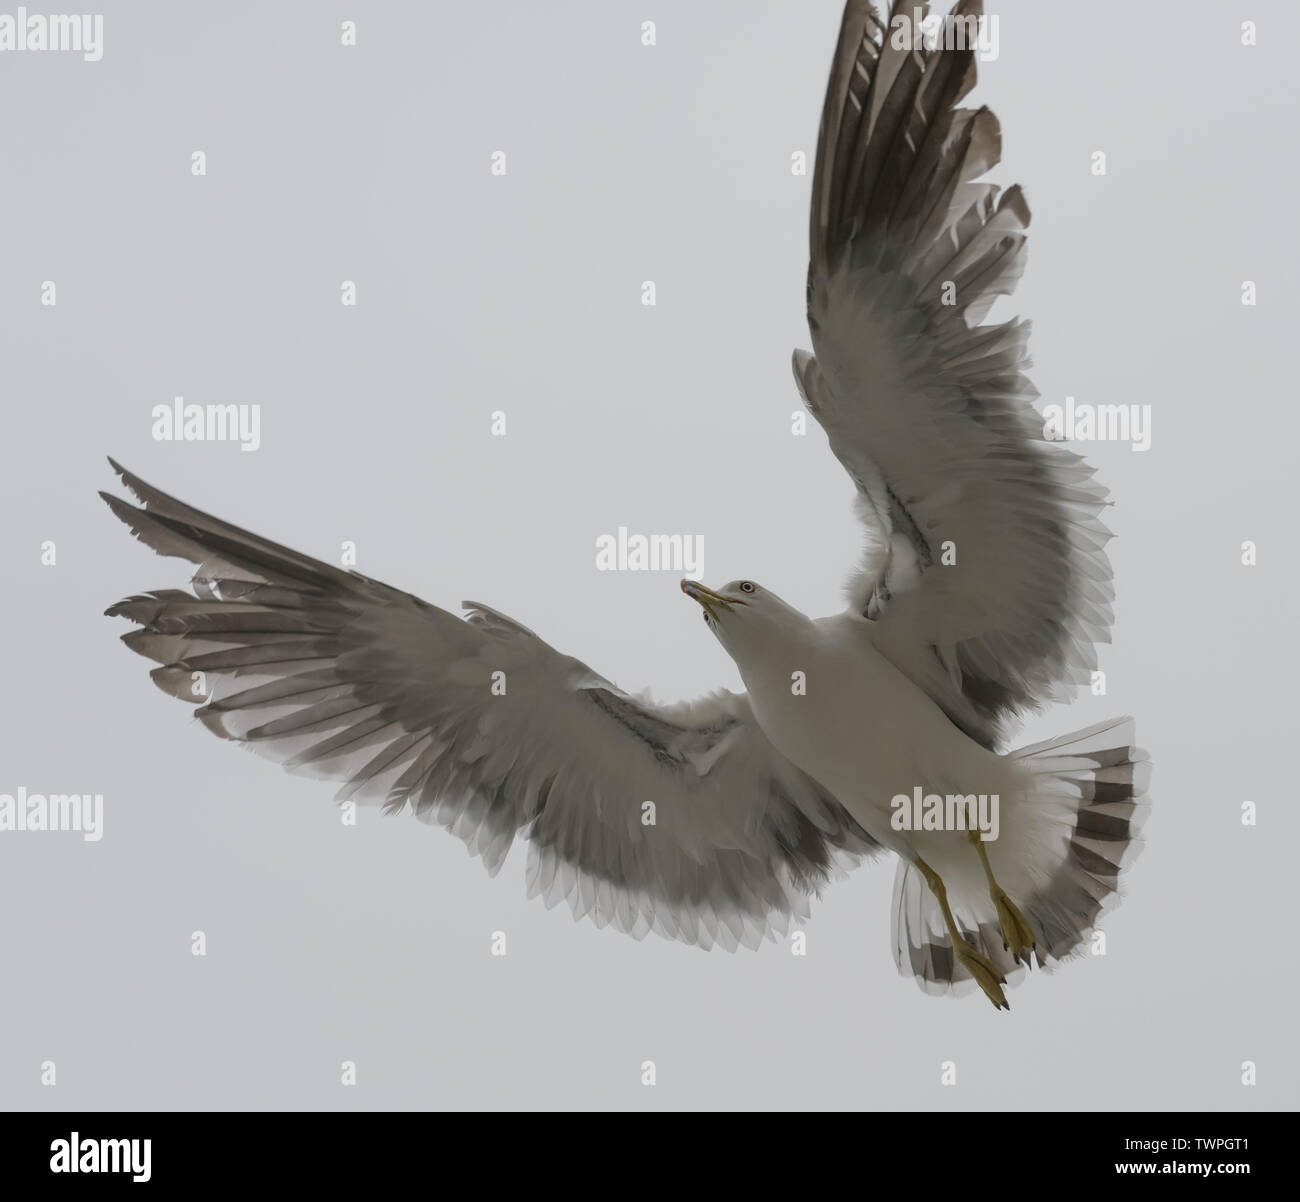 Flying seagull over overcast sky. - Stock Image